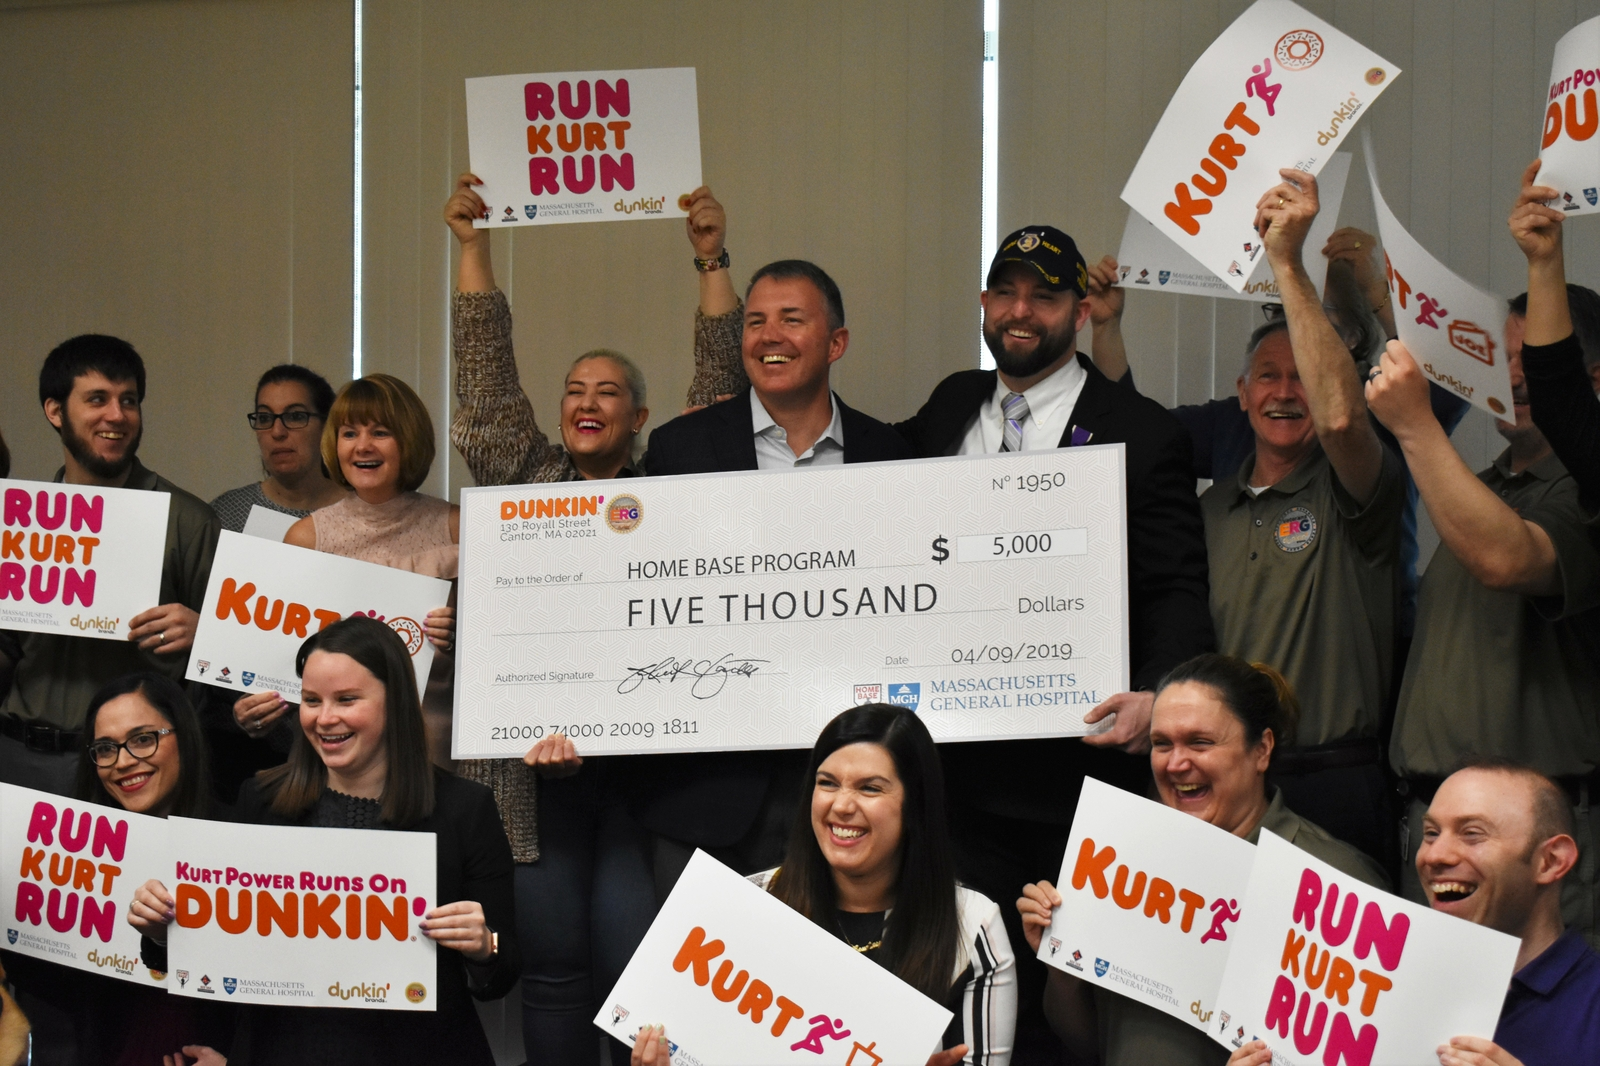 Dunkin' Supports Veteran Kurt Power's Boston Marathon Run for Home Base